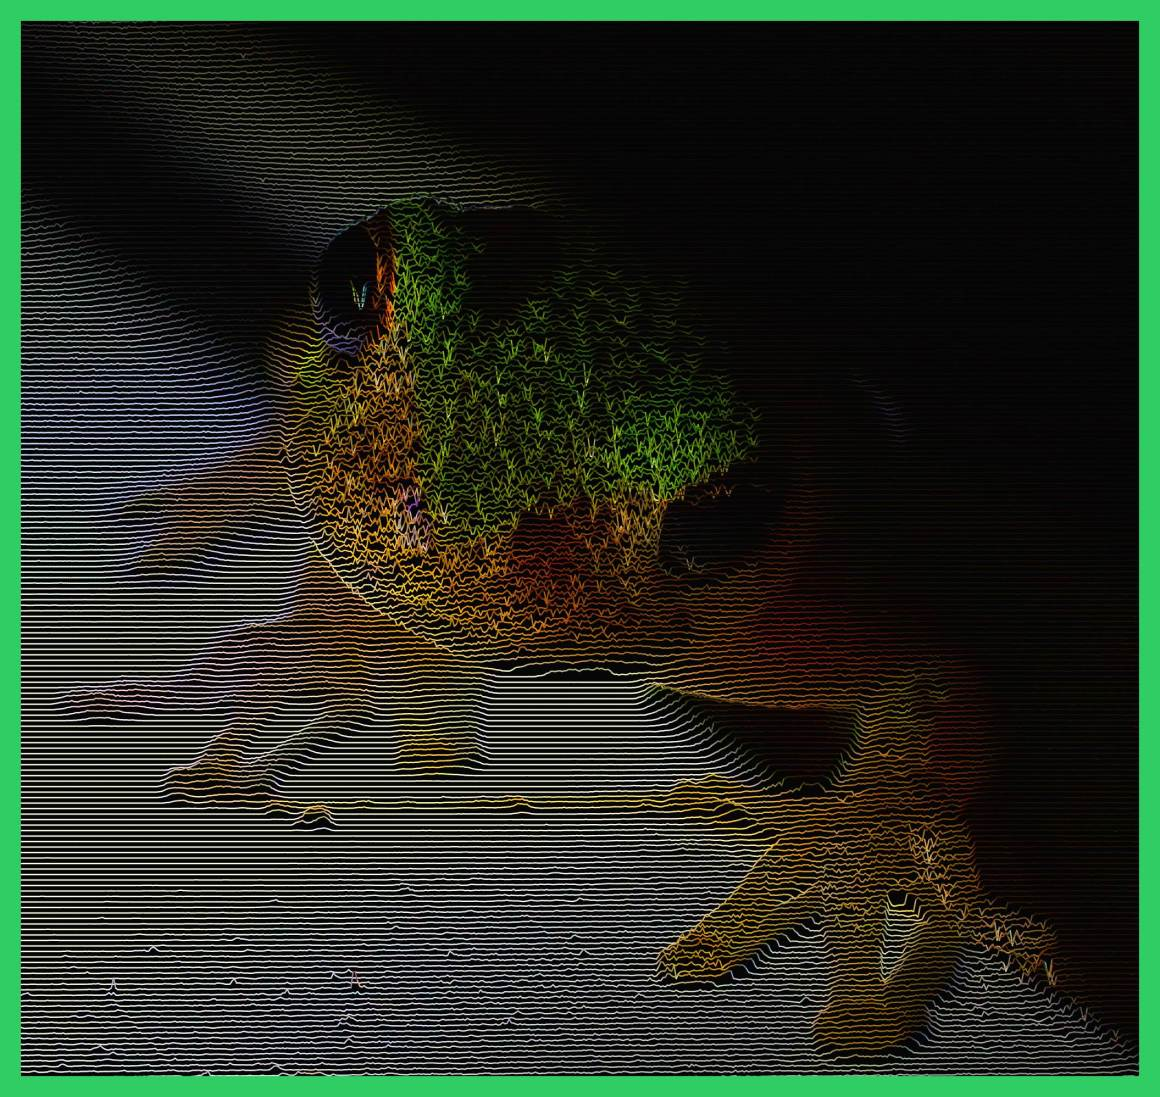 Tree Frog climbing around the porch (2). Photo by Thomas Peace c. 2015